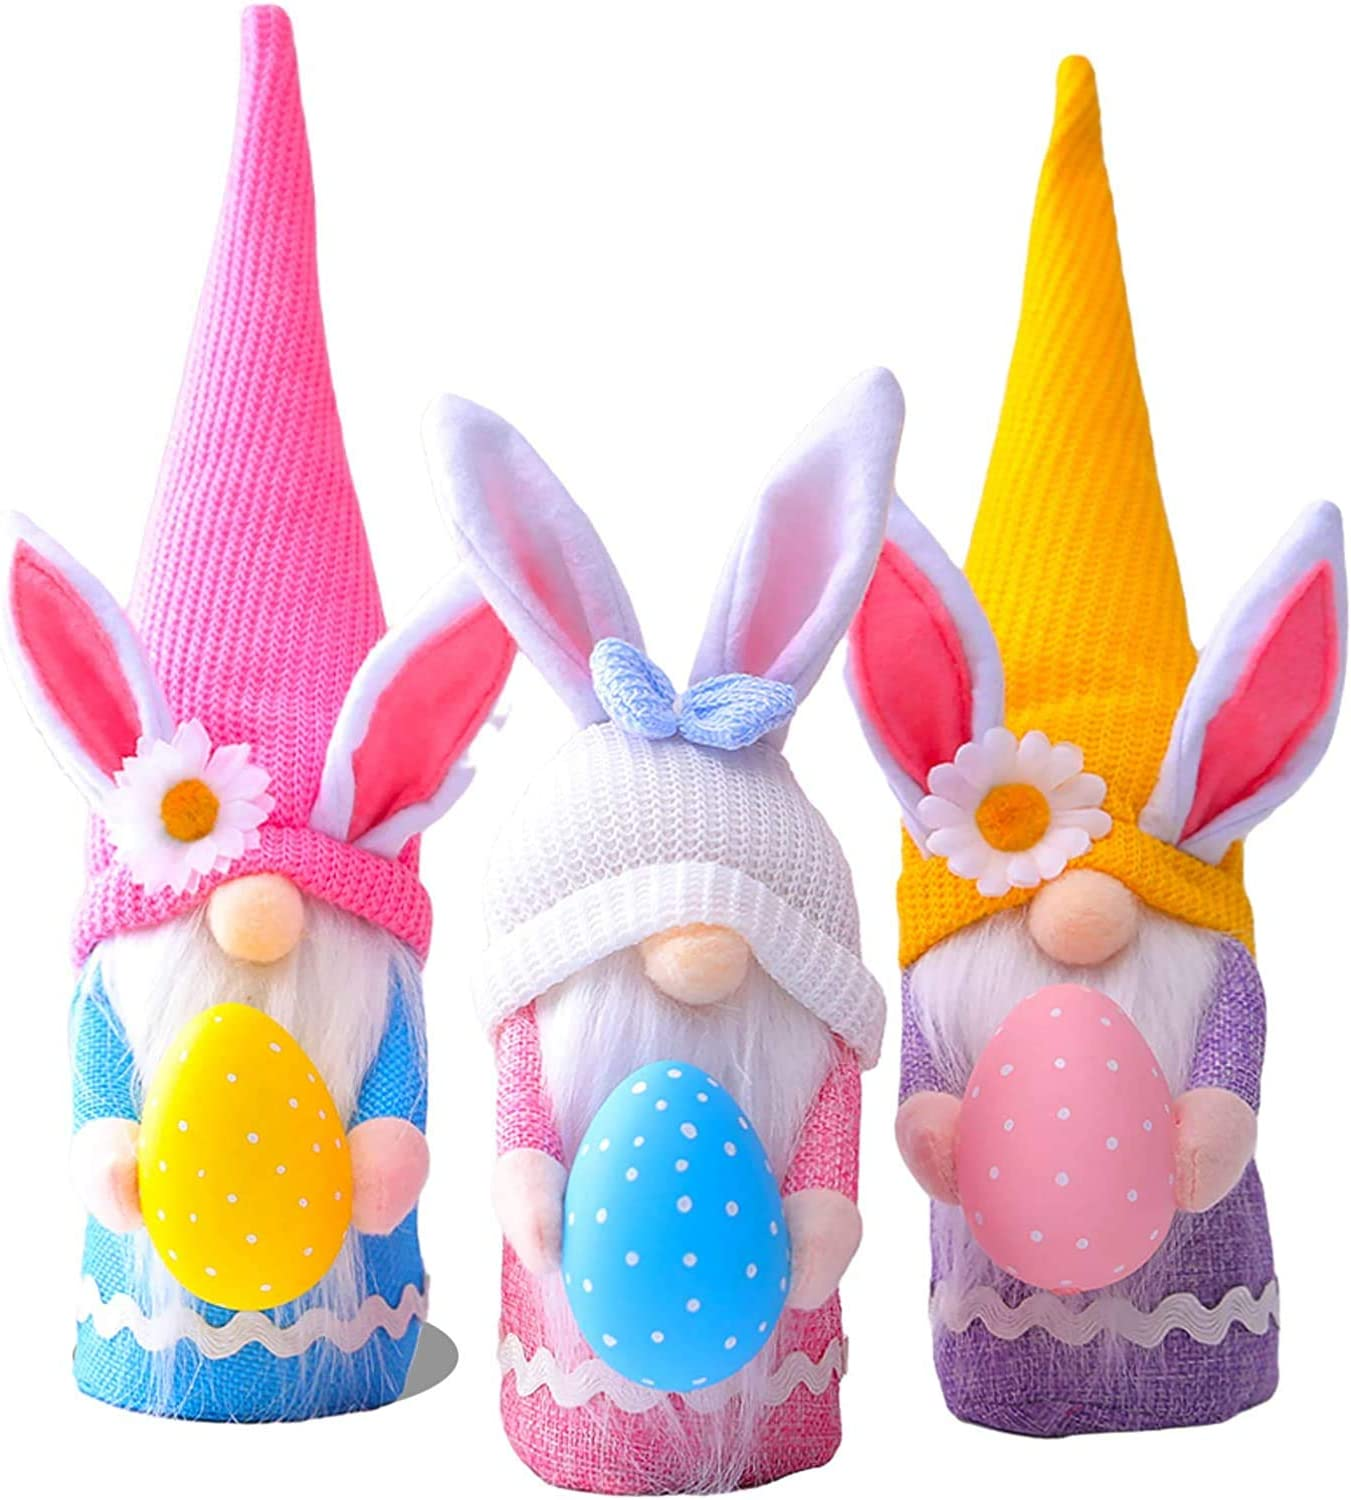 3Pcs Easter Decorations,Easter Gnome Bunny Faceless Plush Doll Decor with Easter Egg, Handmade Easter Gifts Toys for Kids/Women/Men, Spring Easter Home Decorations Tree Ornaments